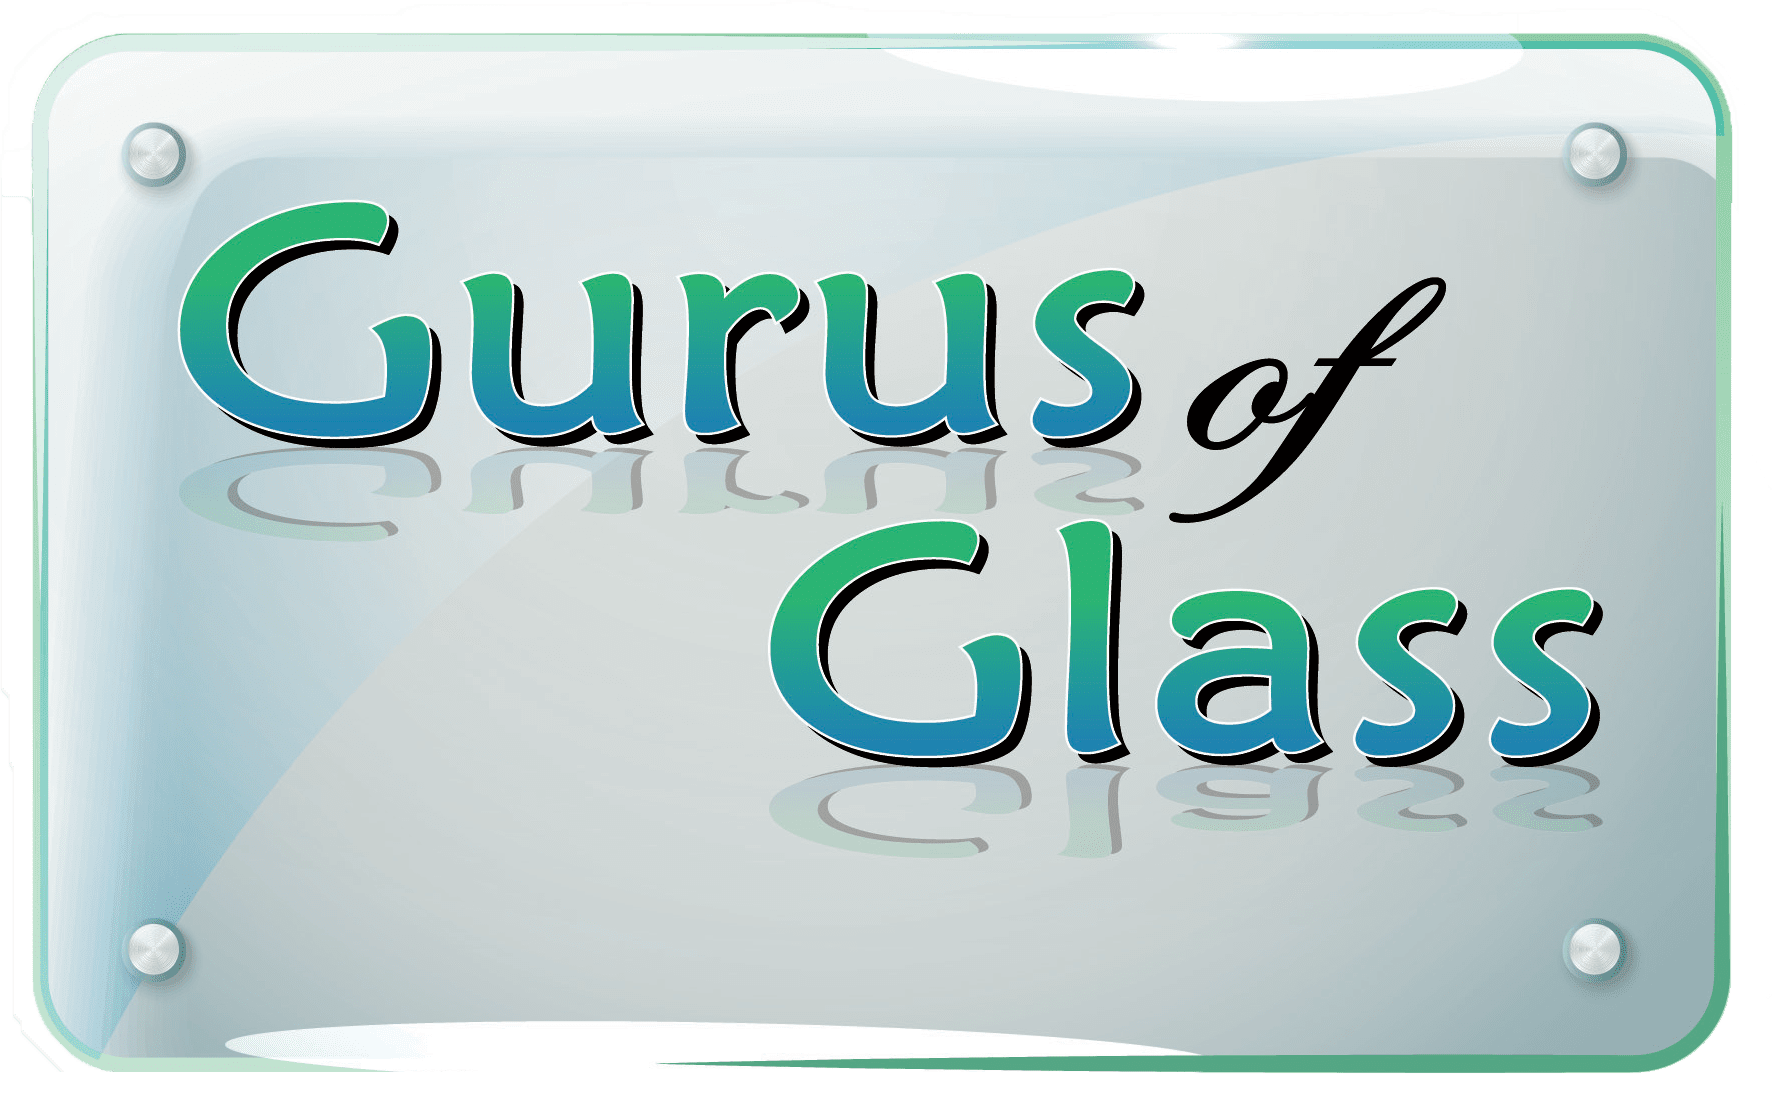 Gurus of Glass